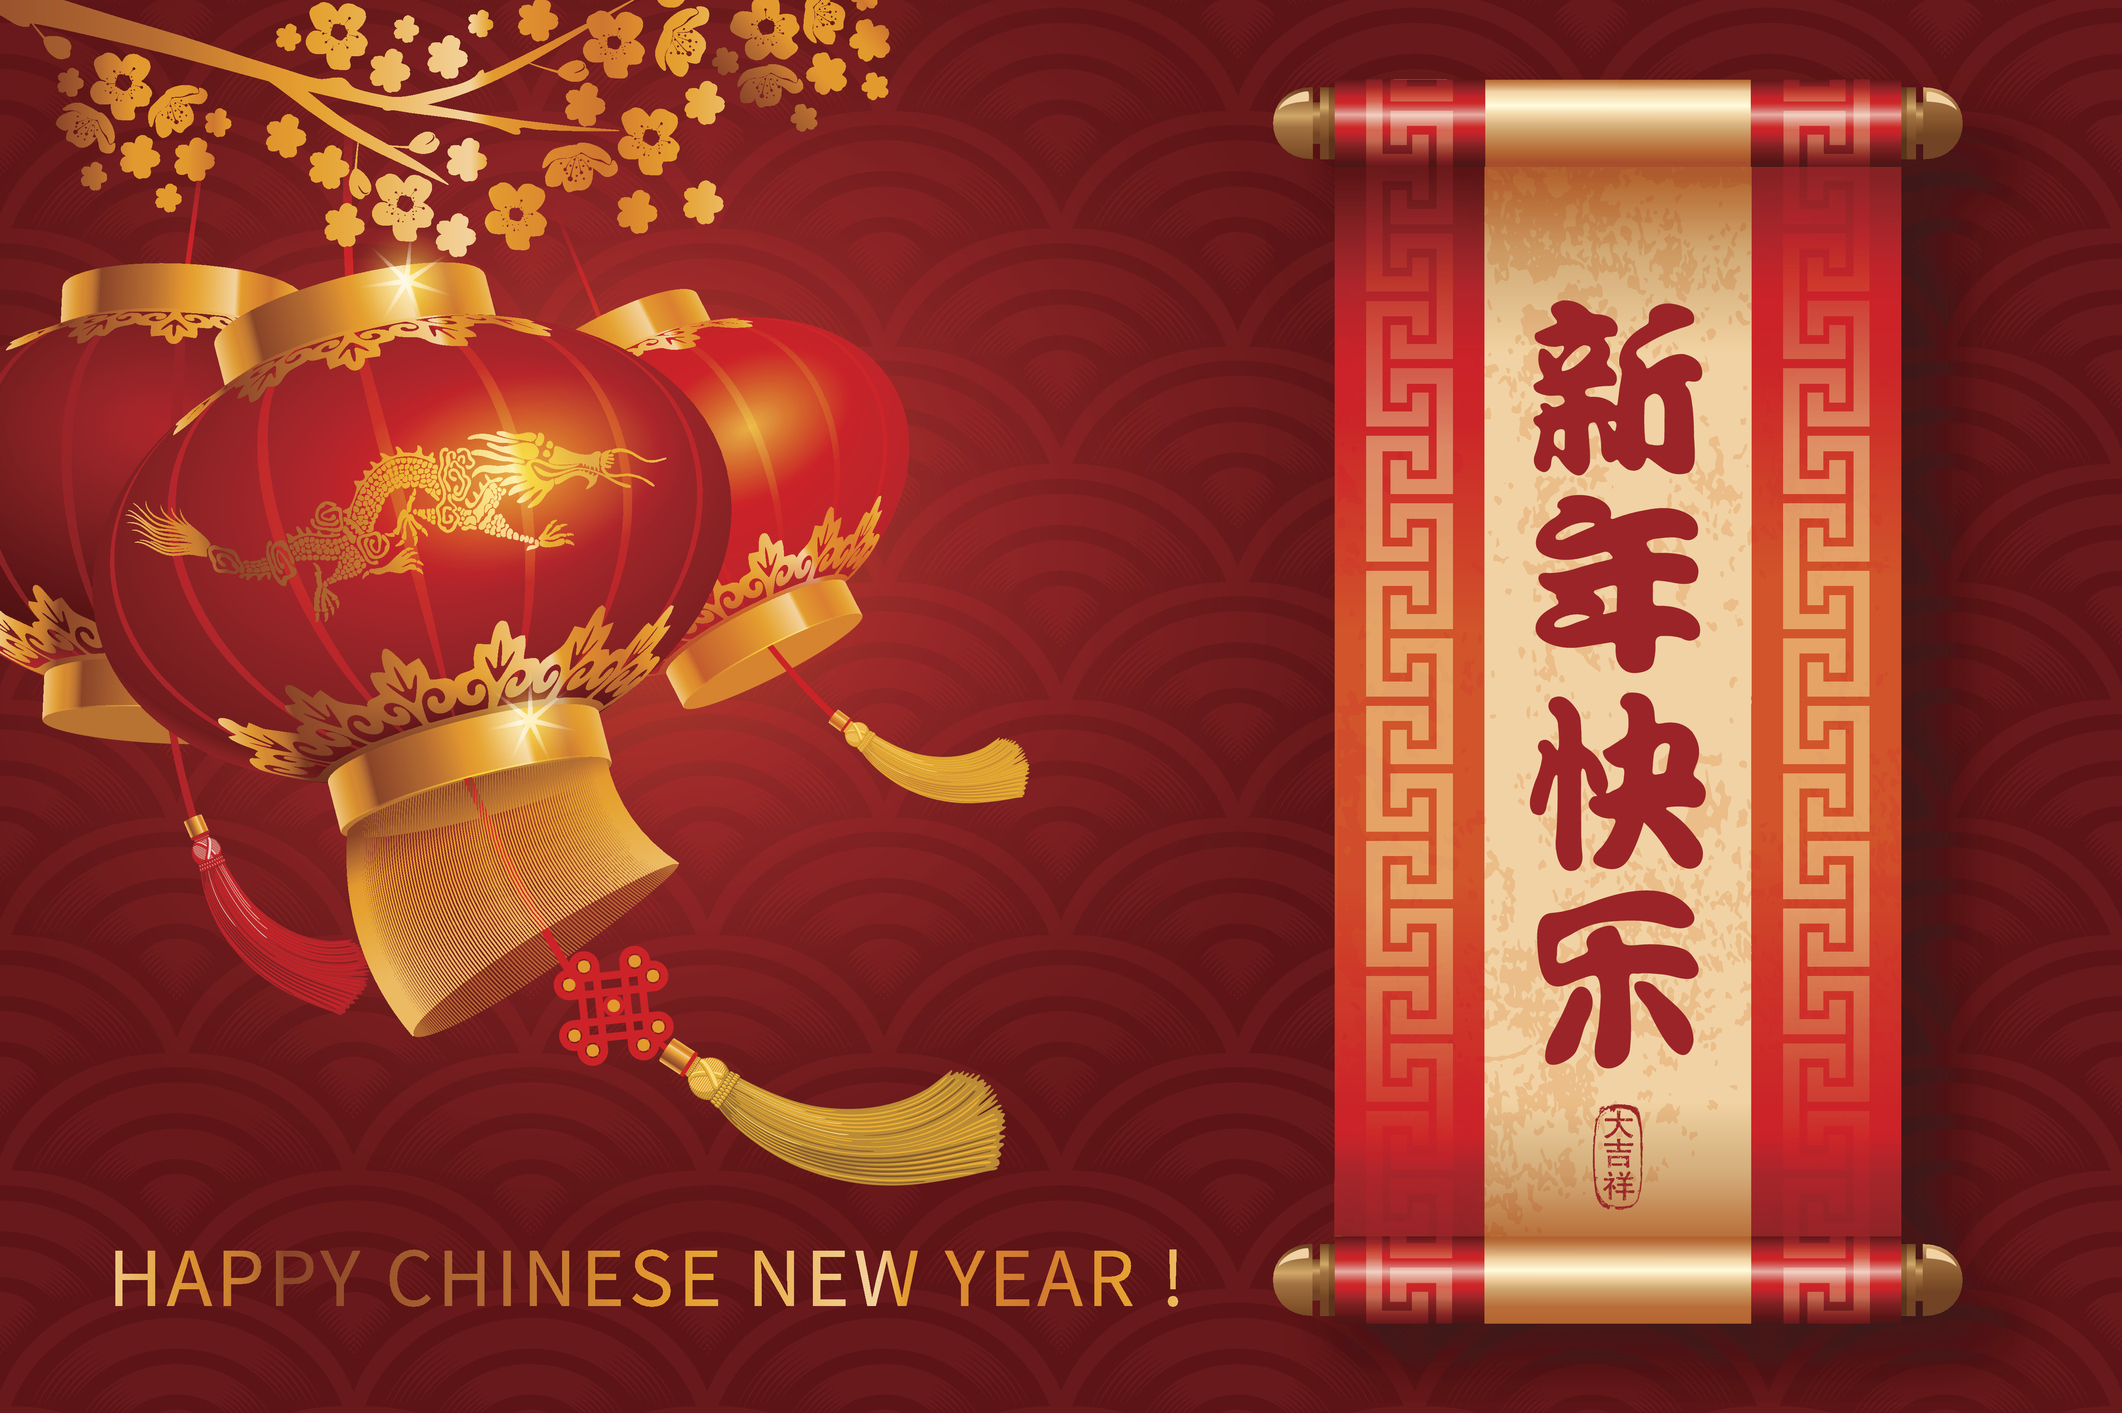 71 Chinese New Year HD Wallpapers Background Images   Wallpaper 2122x1413